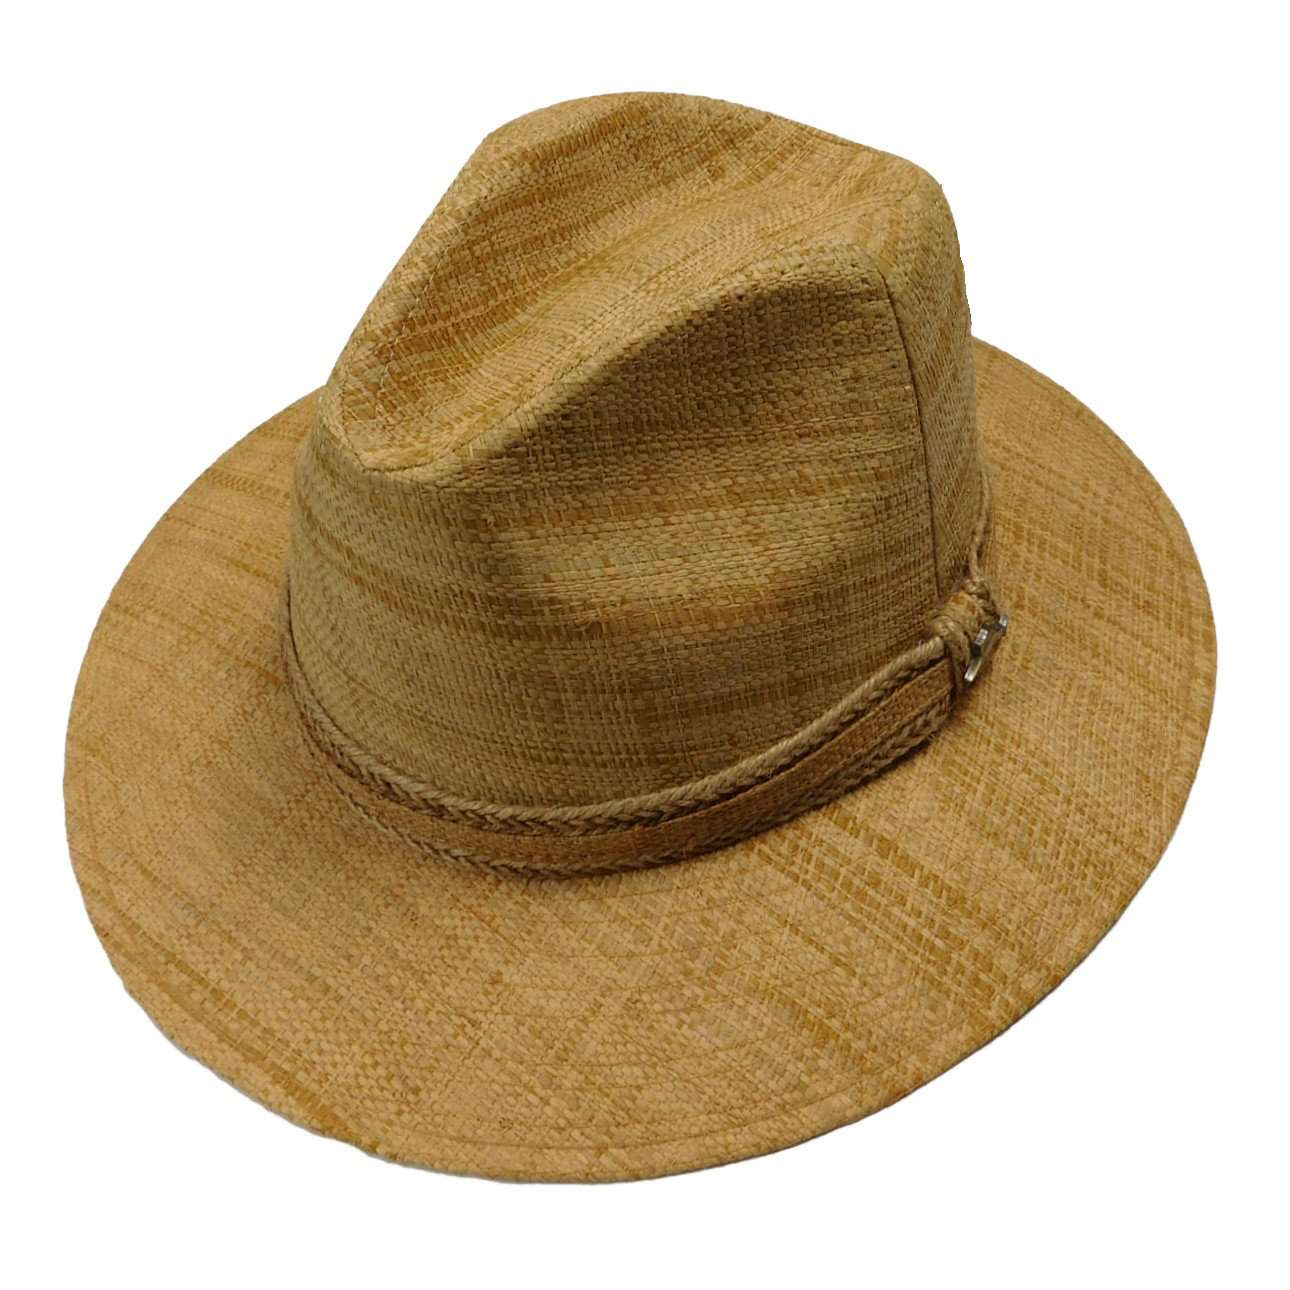 Tommy Bahama Raffia Safari with Jute - SetarTrading Hats